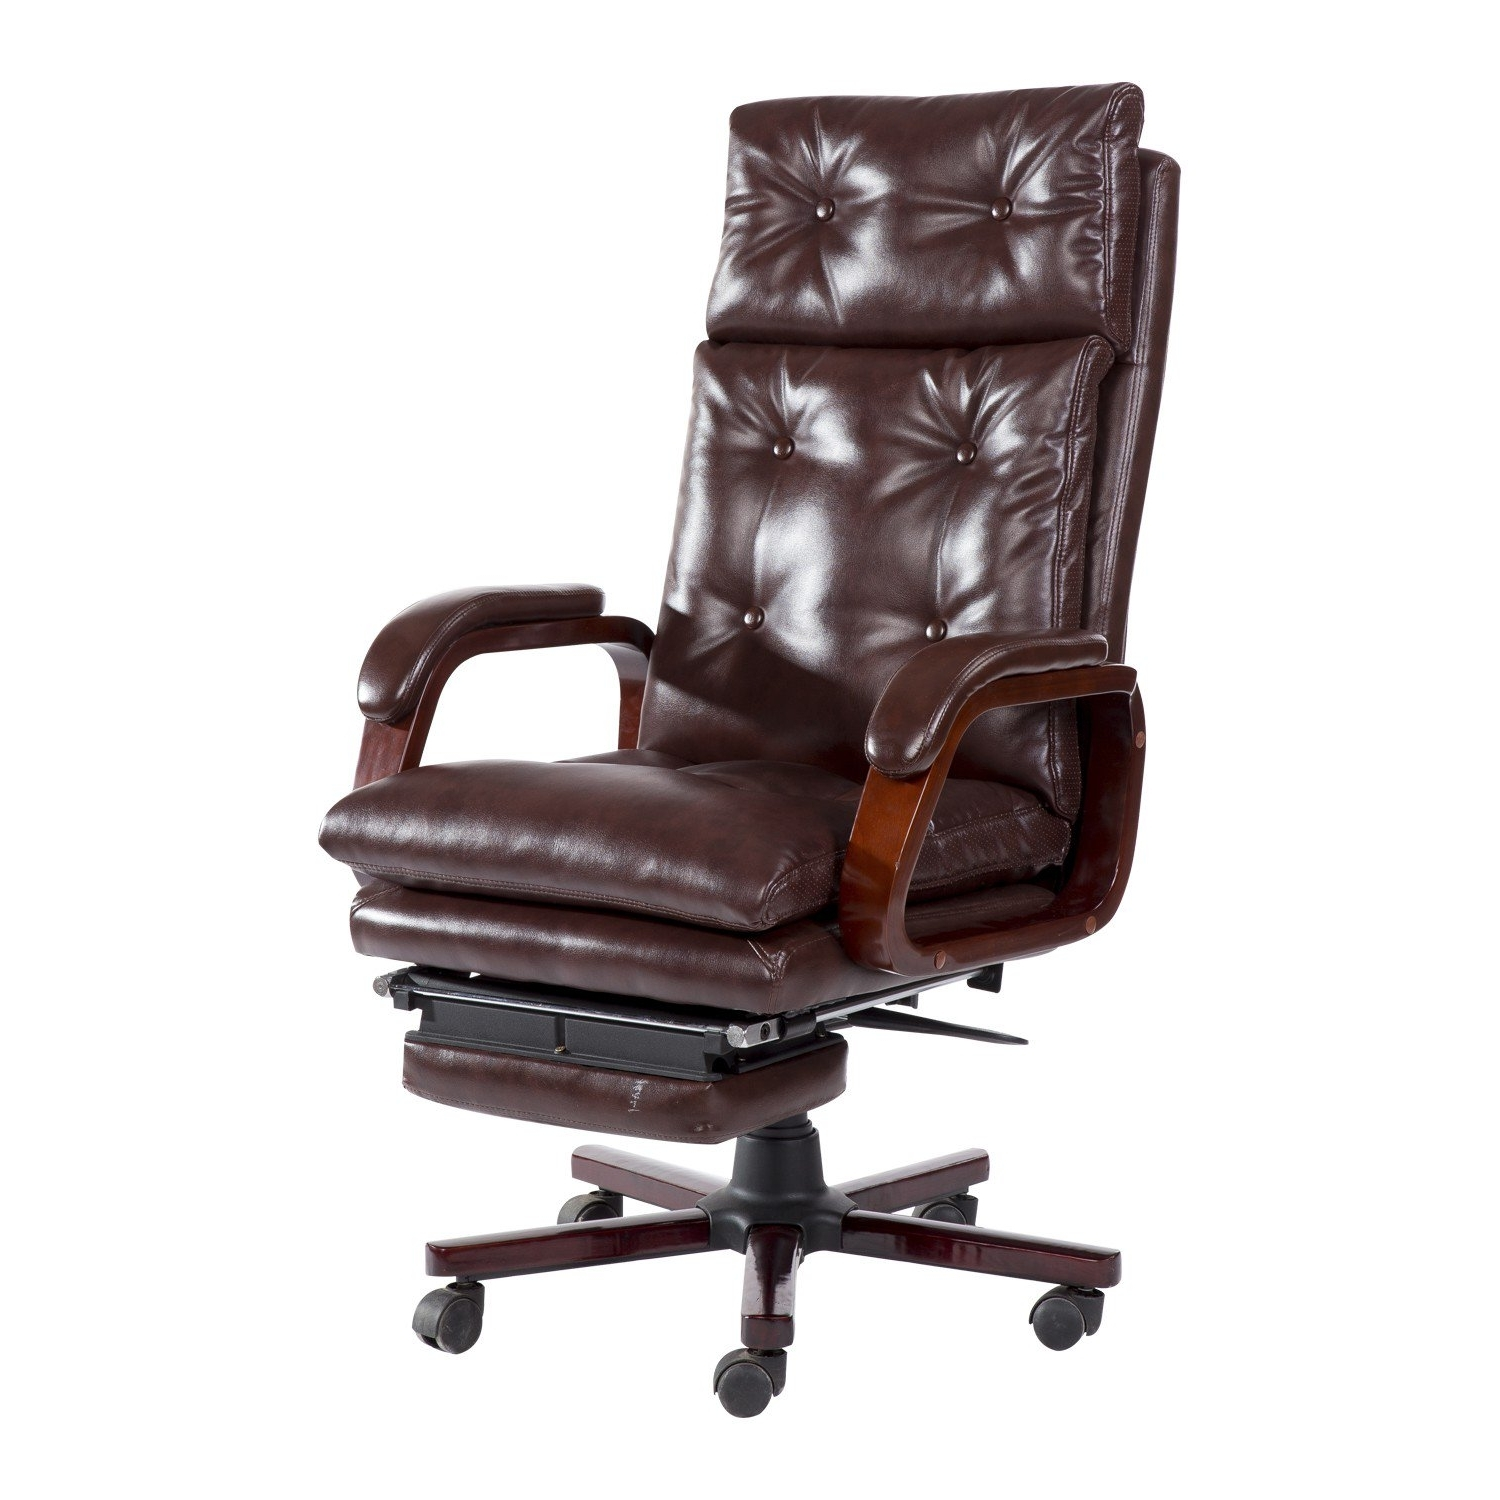 2018 Homcom High Back Pu Leather Executive Reclining Office Chair With In Executive Office Chairs With Footrest (View 2 of 20)